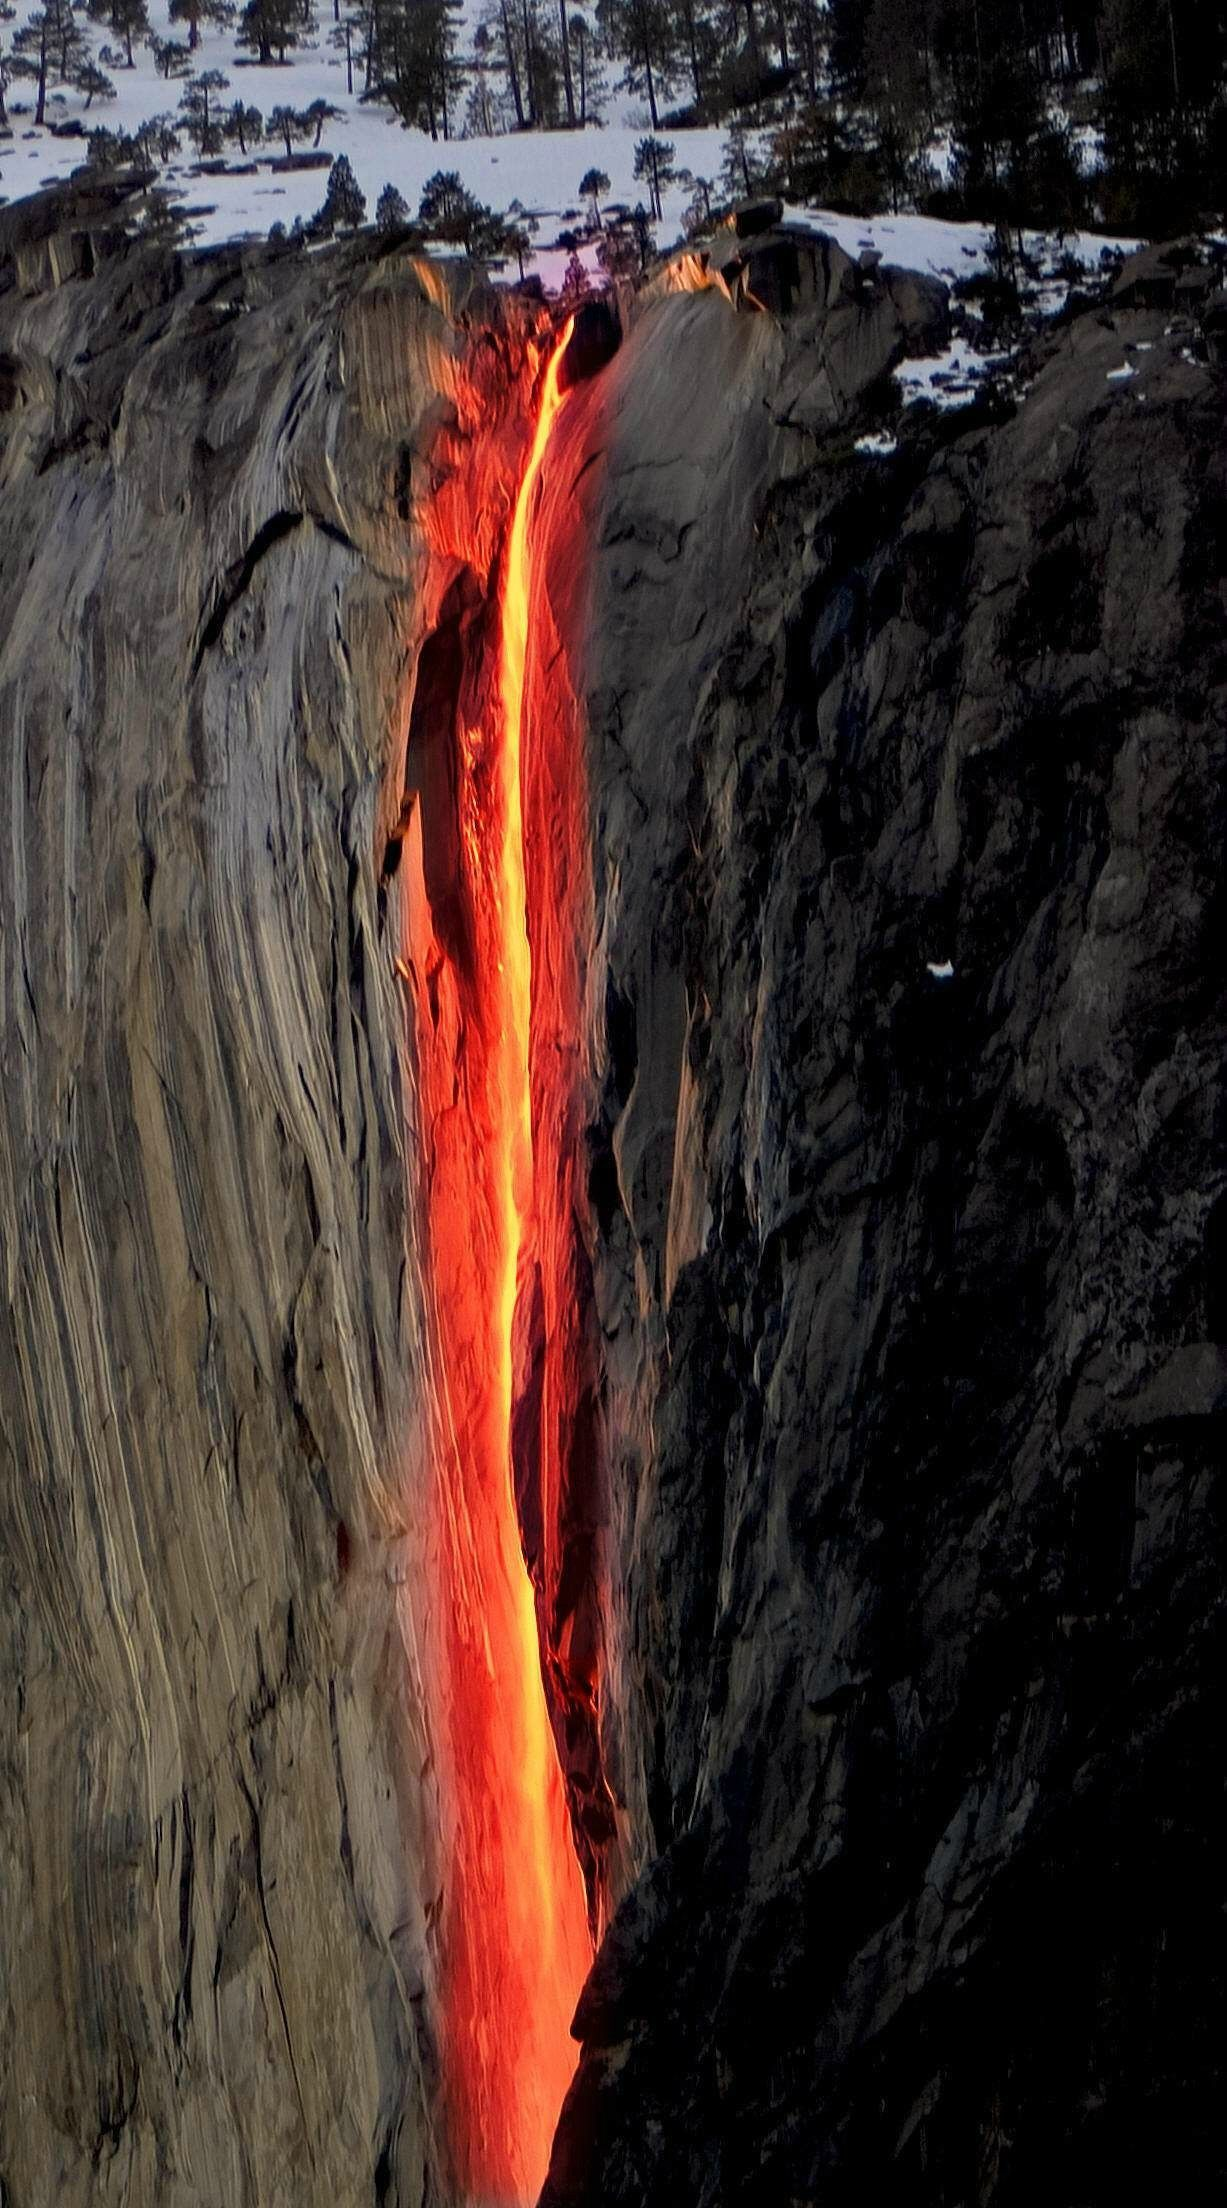 """Horsetail Fall in California flows only in winter and spring. Most days of its 'life' this fall has a regular color. But every February, just for a couple of days, this fall turns into the fire. Lit by the sun, Horsetail Fall reflects orange and red rays."""